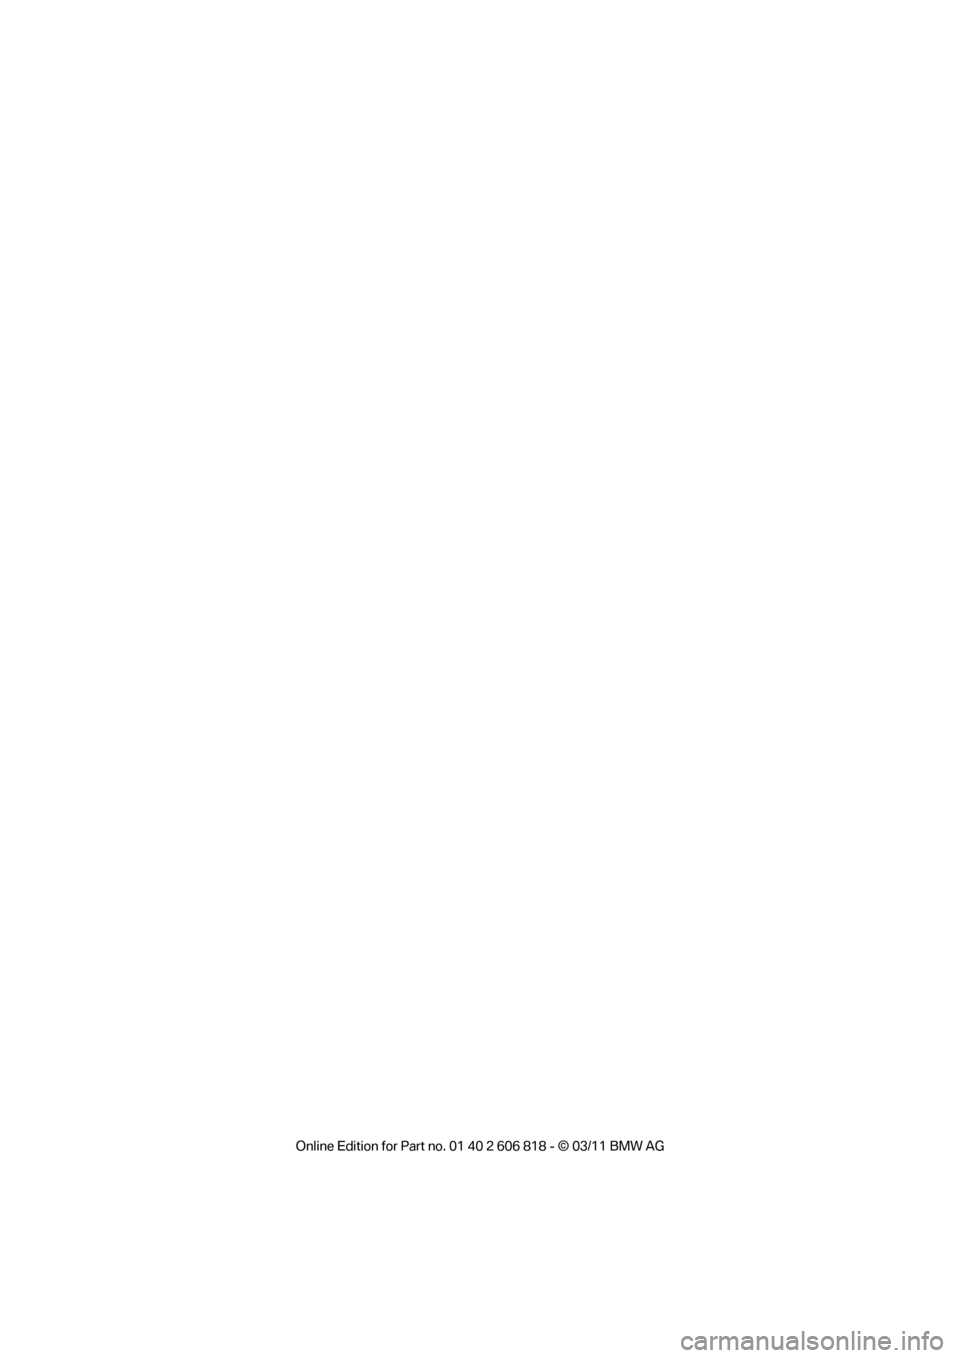 BMW 128I 2012 E88 Owners Manual, Page 2